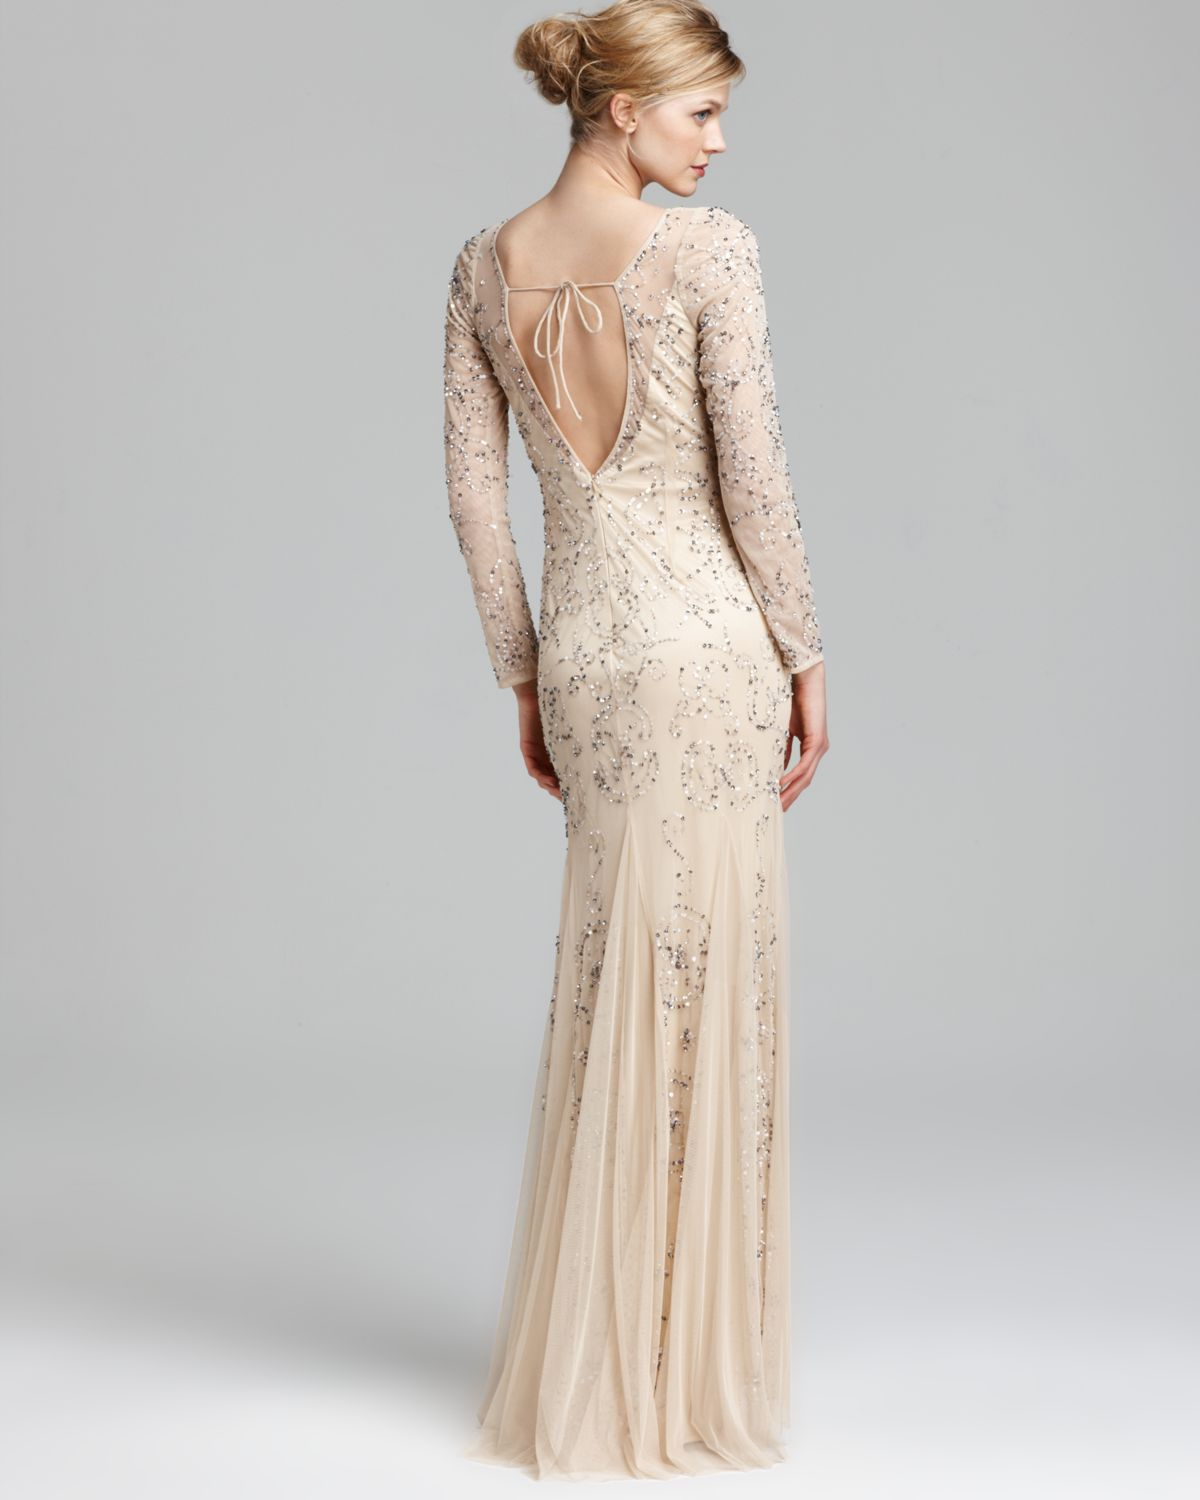 Fancy Adrianna Papell Dress Elbow Sleeve Sequined Beaded Gown Photo ...